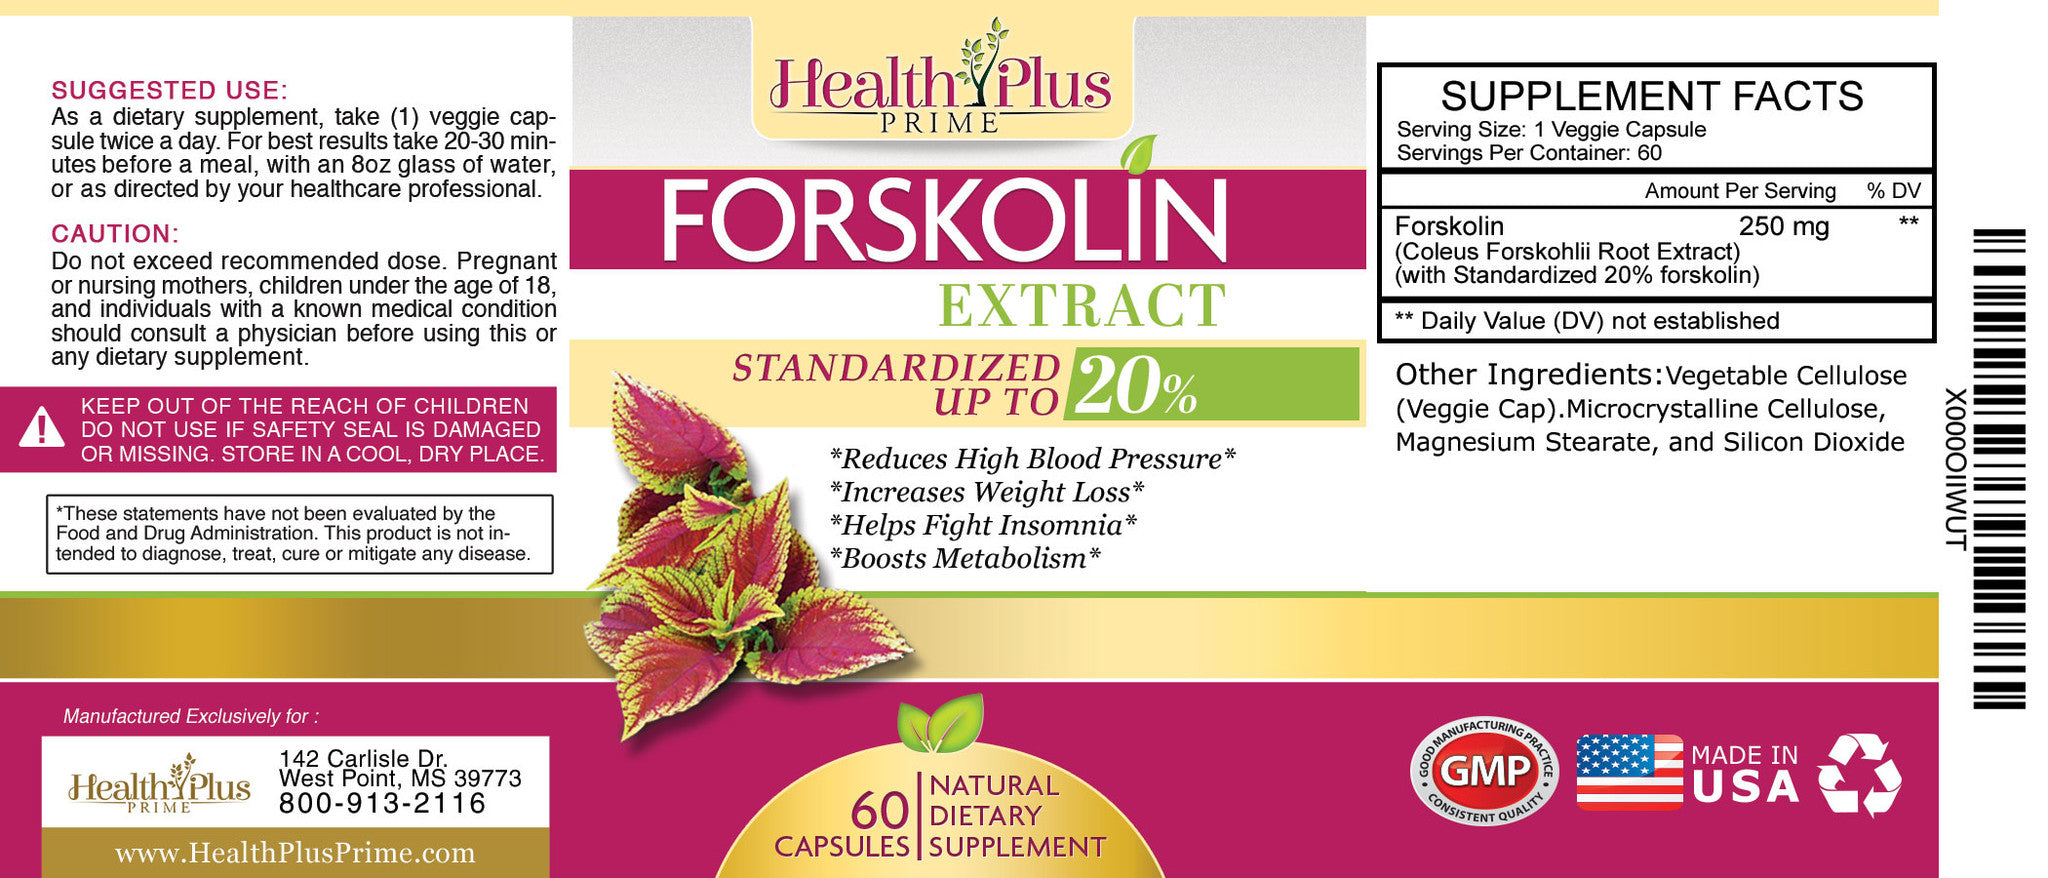 Forskolin Extract Natural Weight Loss Health Plus Prime